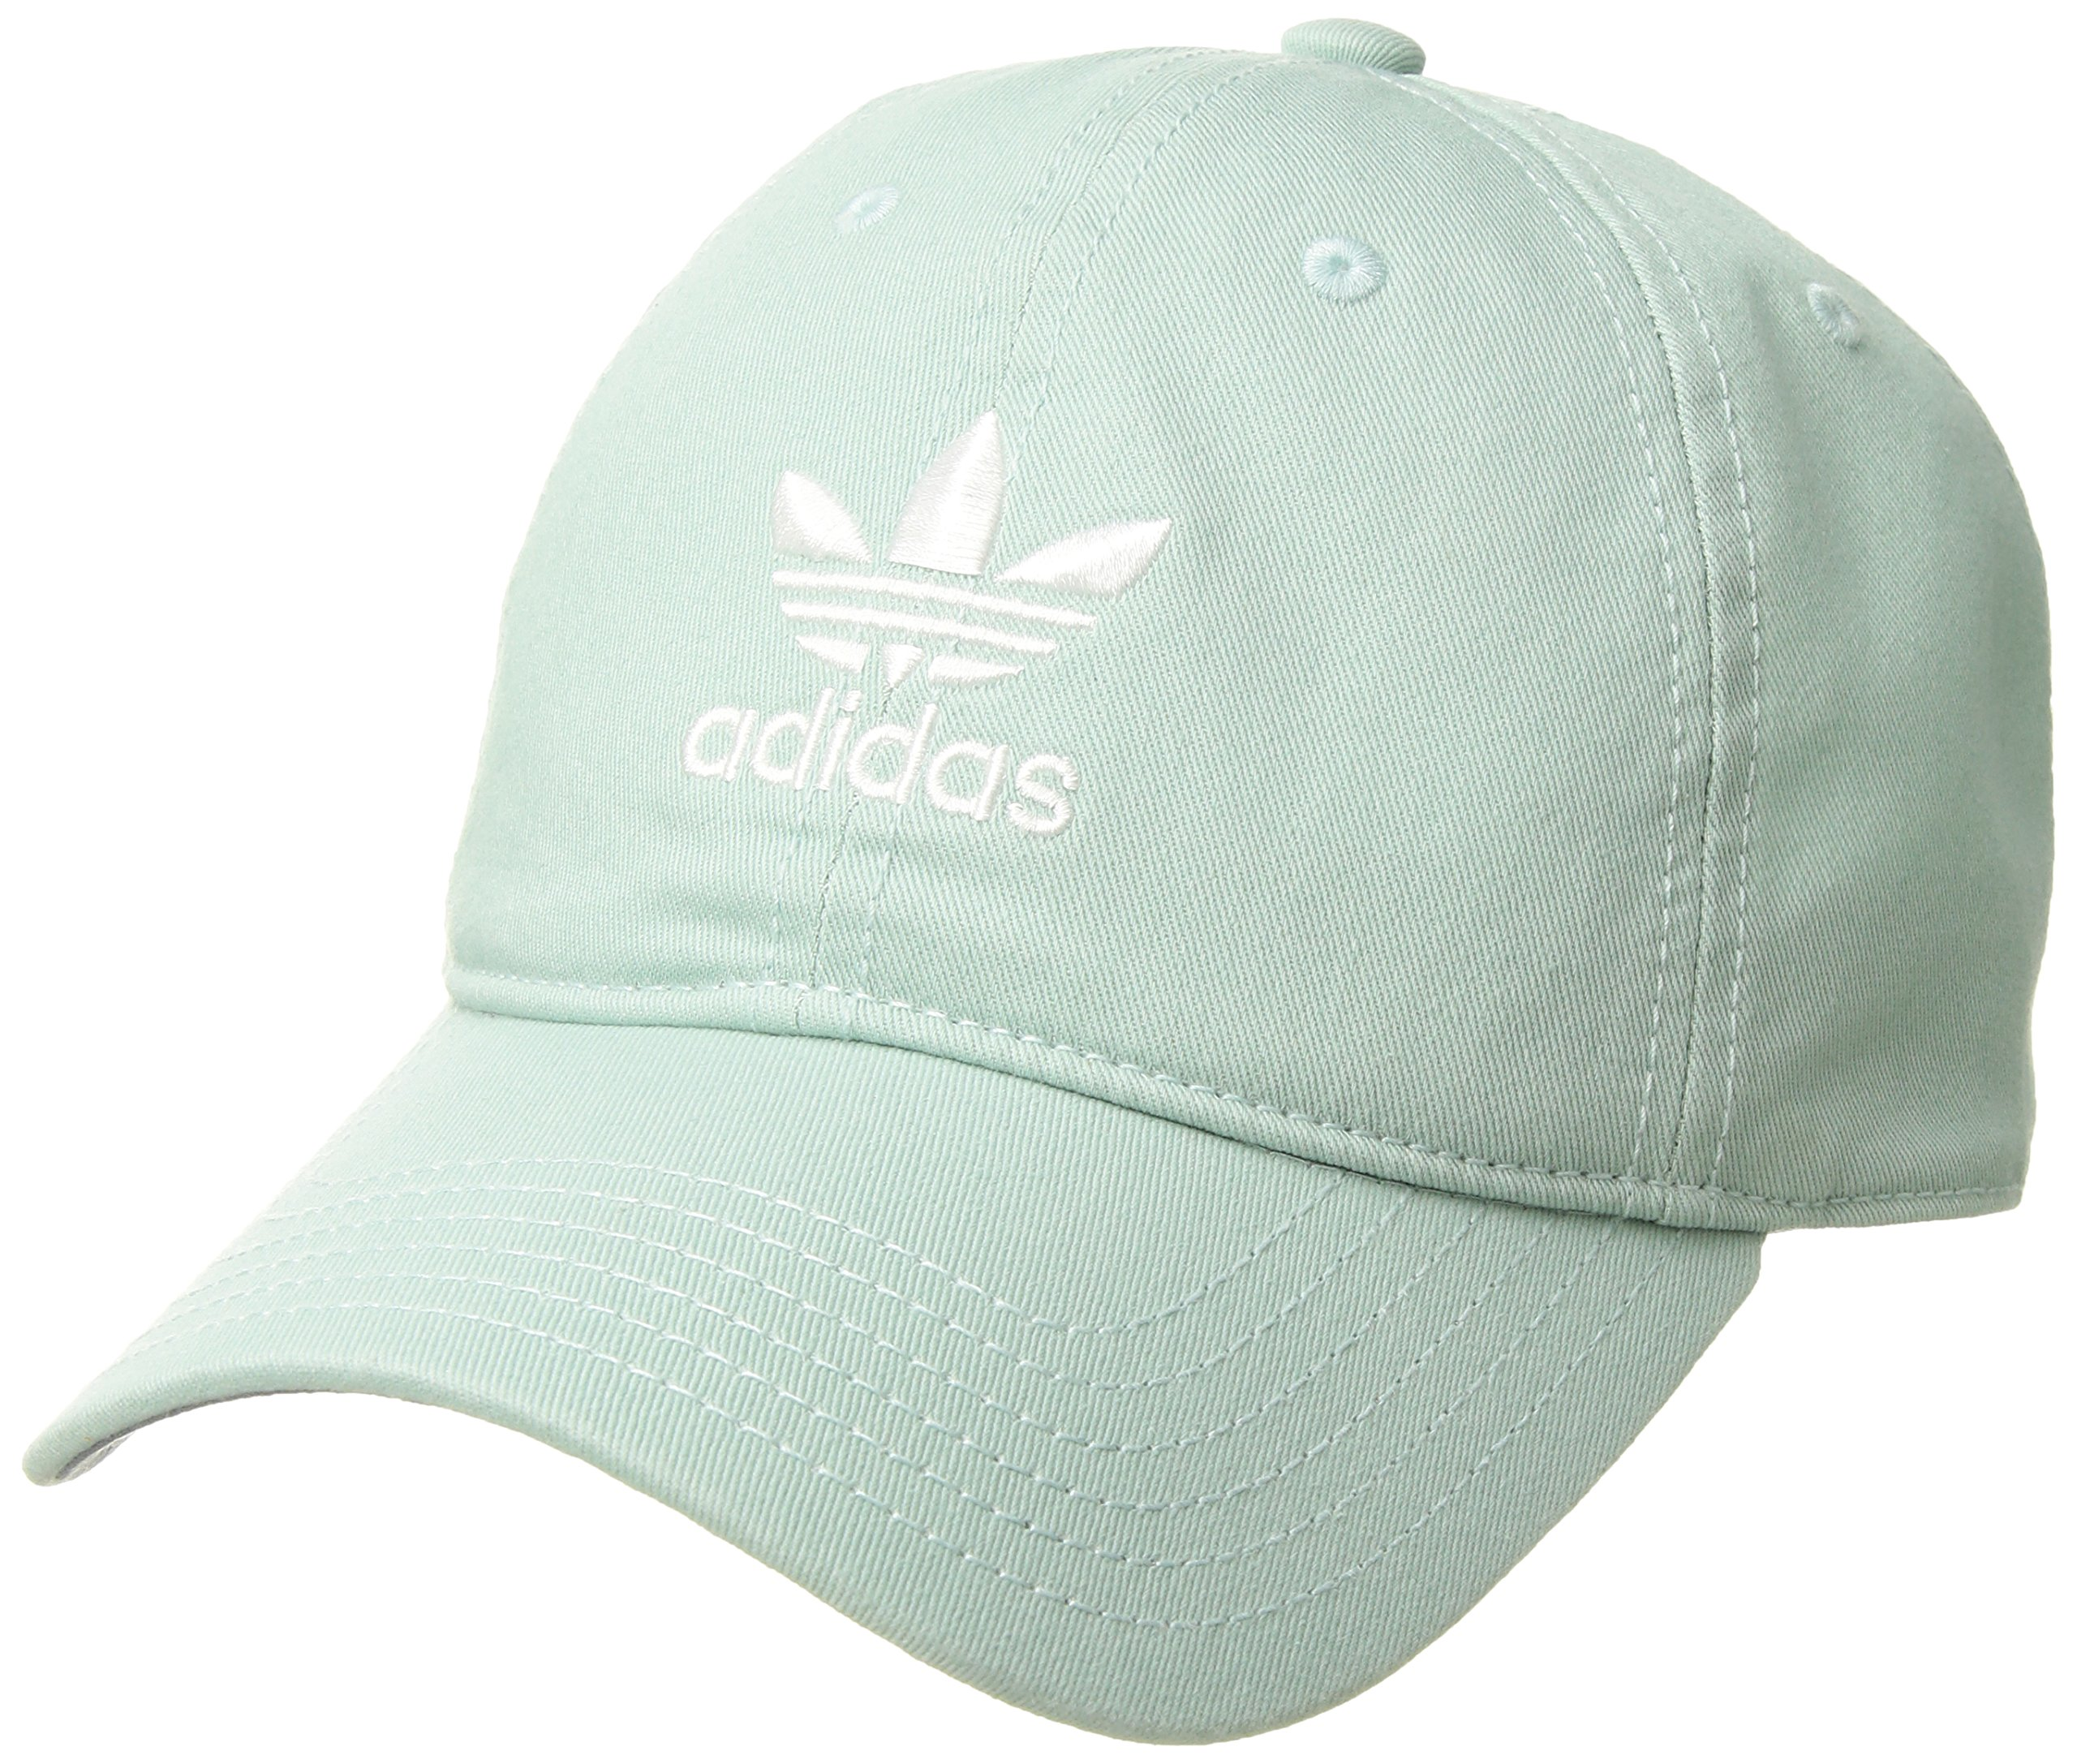 adidas Women's Originals Relaxed Fit Strapback Cap, Ash Green/White, One Size